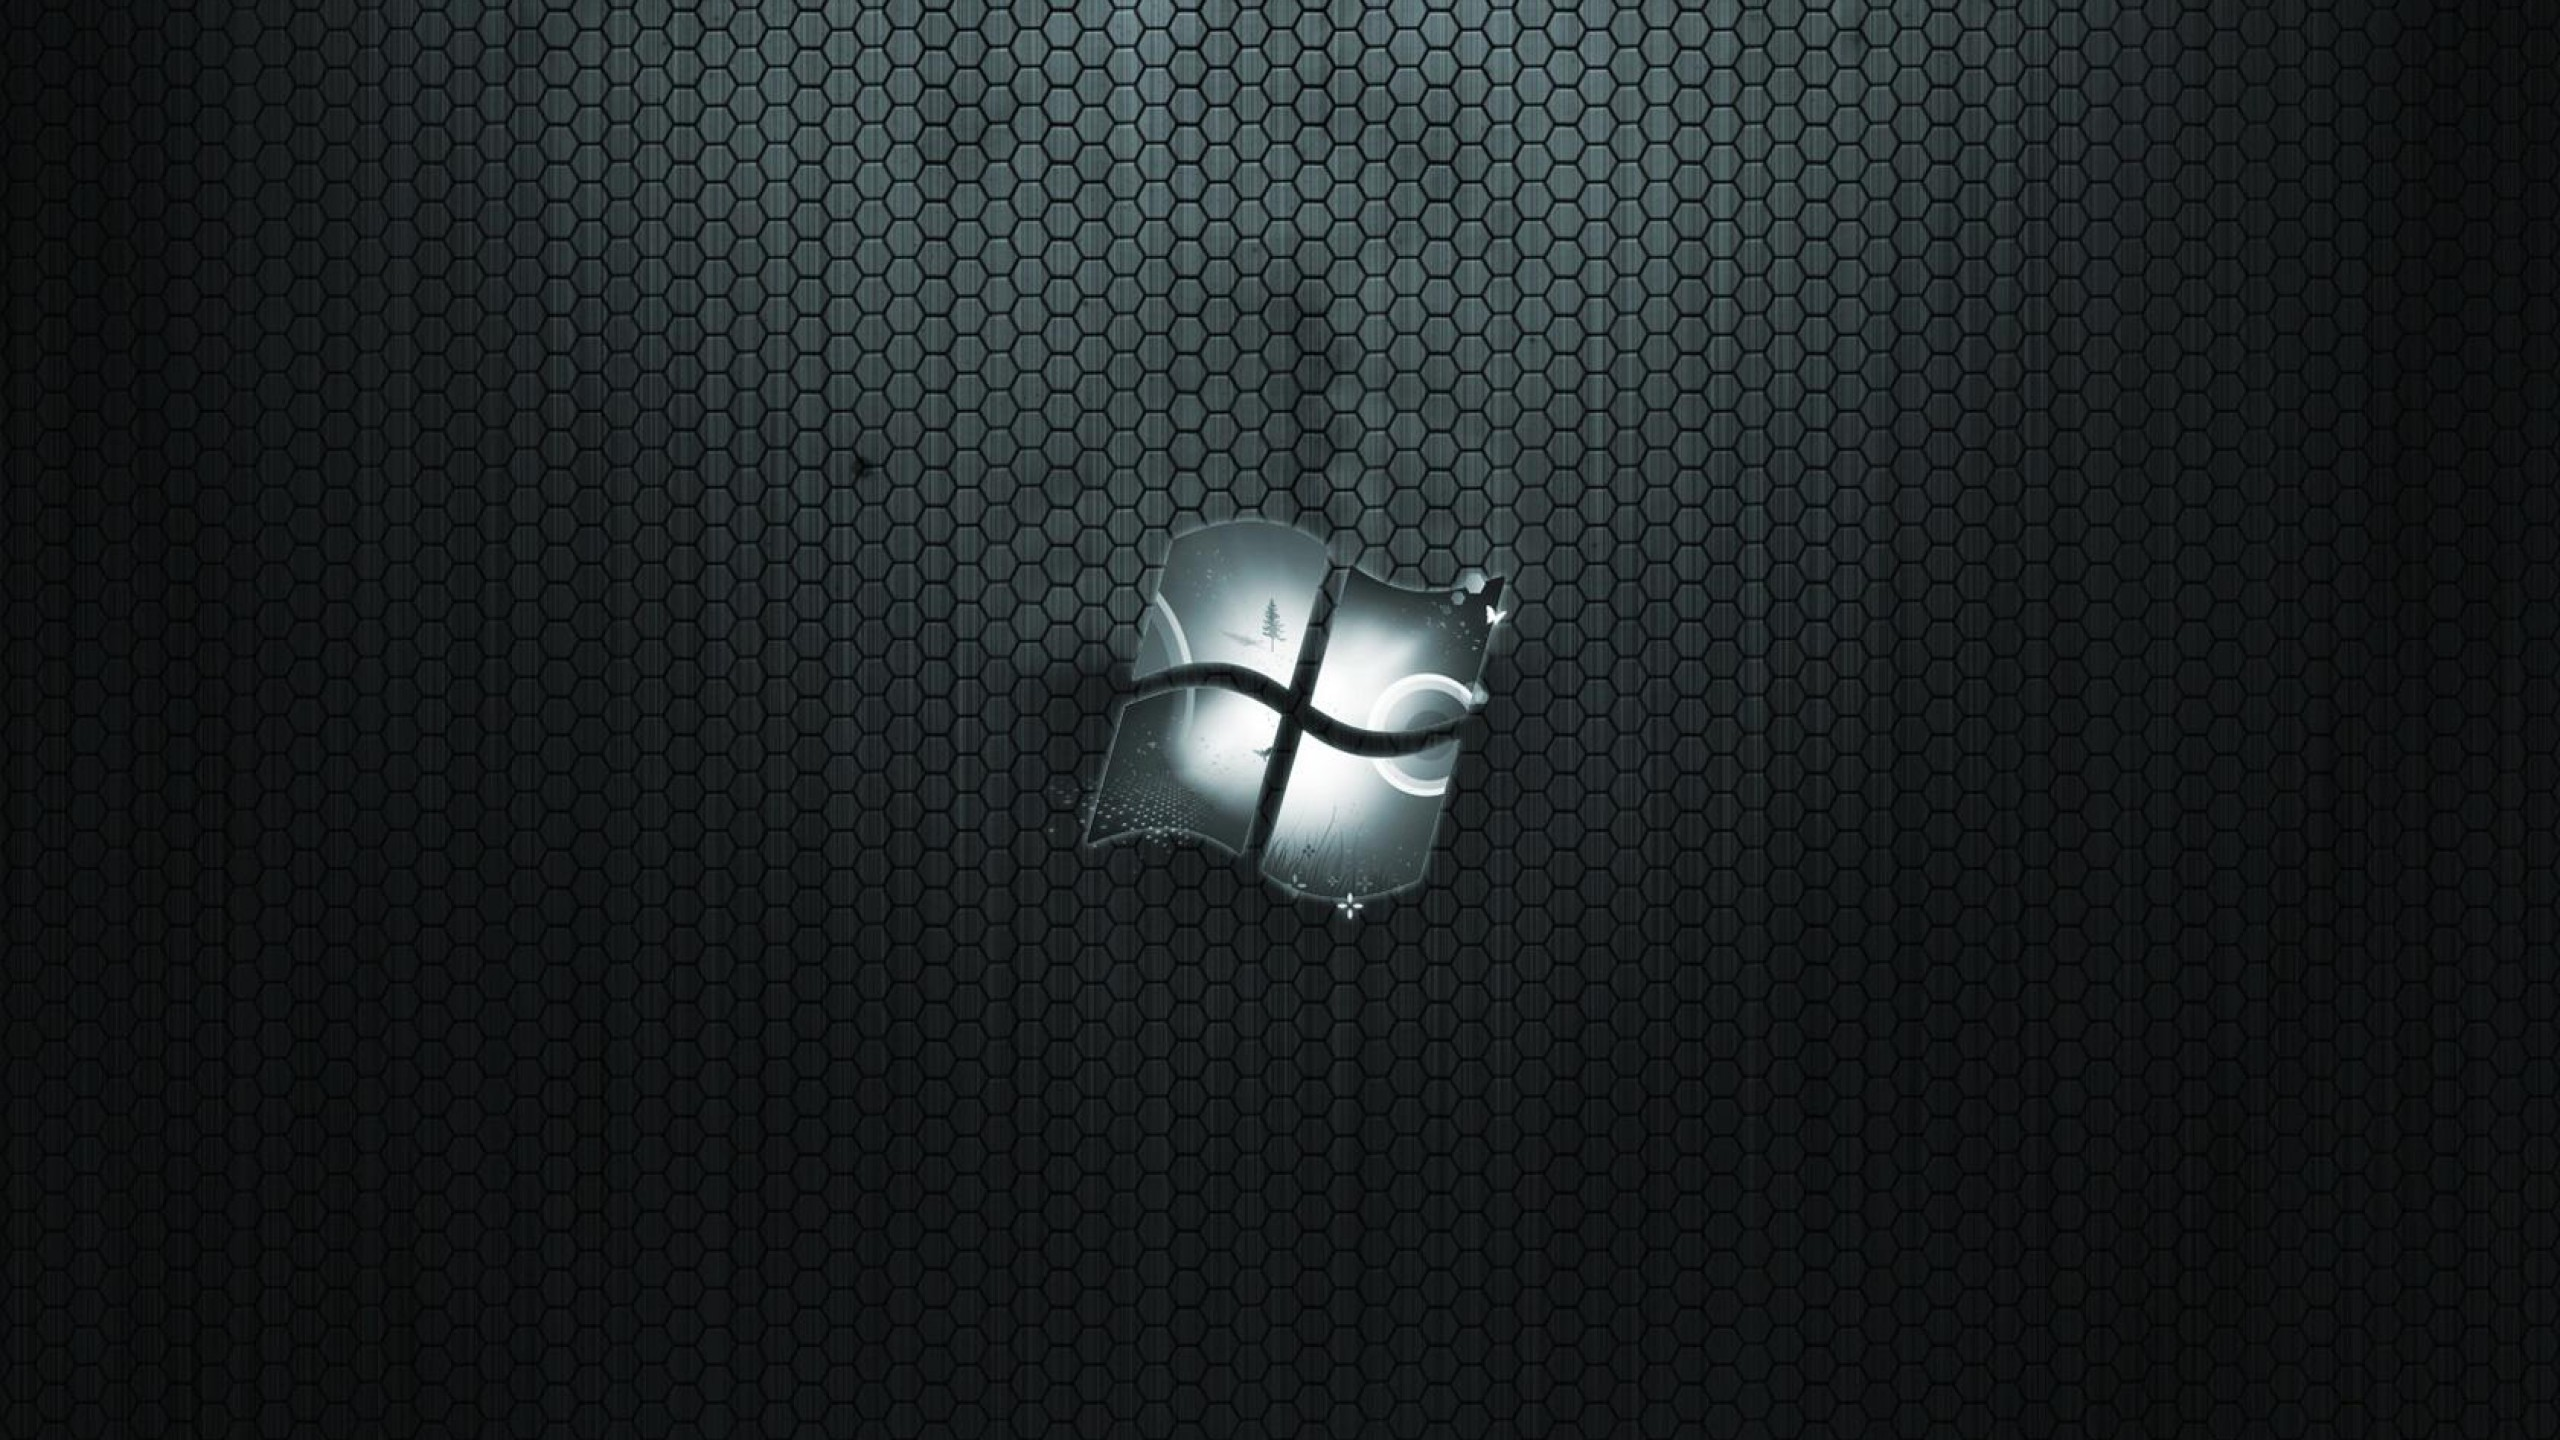 Black Windows Logos Wallpaper - Black Windows Logos Wallpaper